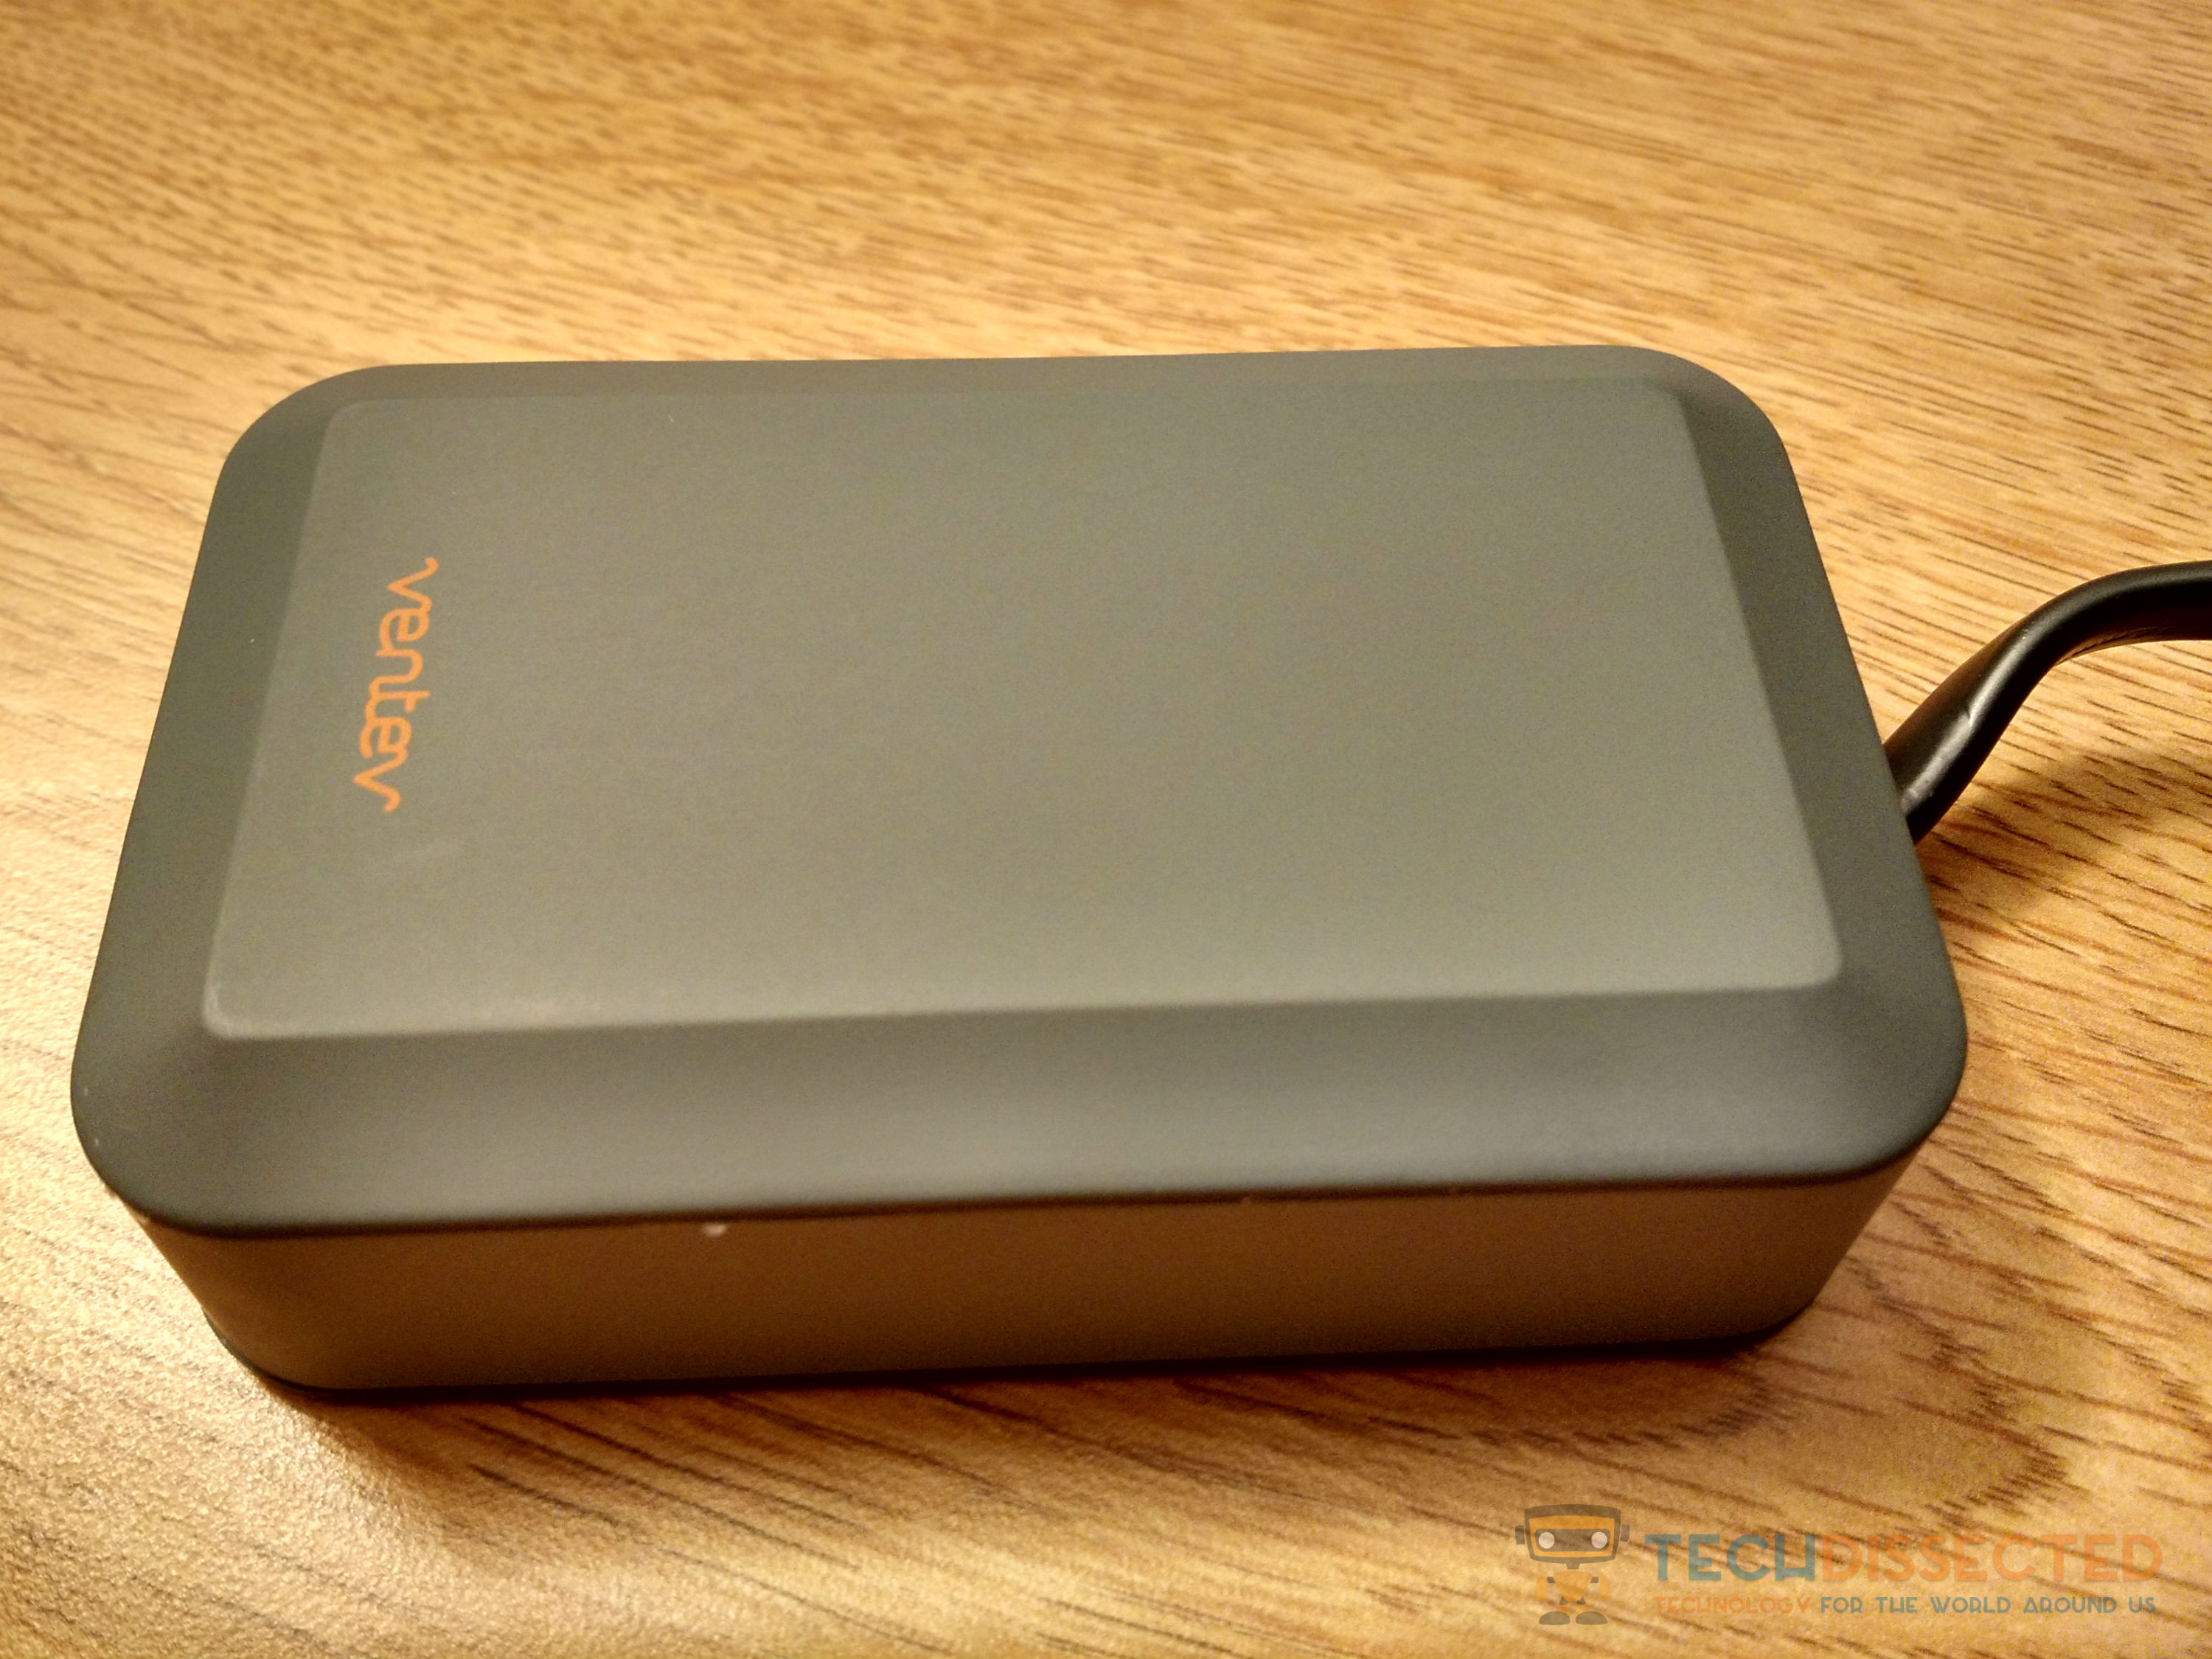 Usb Charging Hub Review Ventev Usb Charging Hub Portable Charger